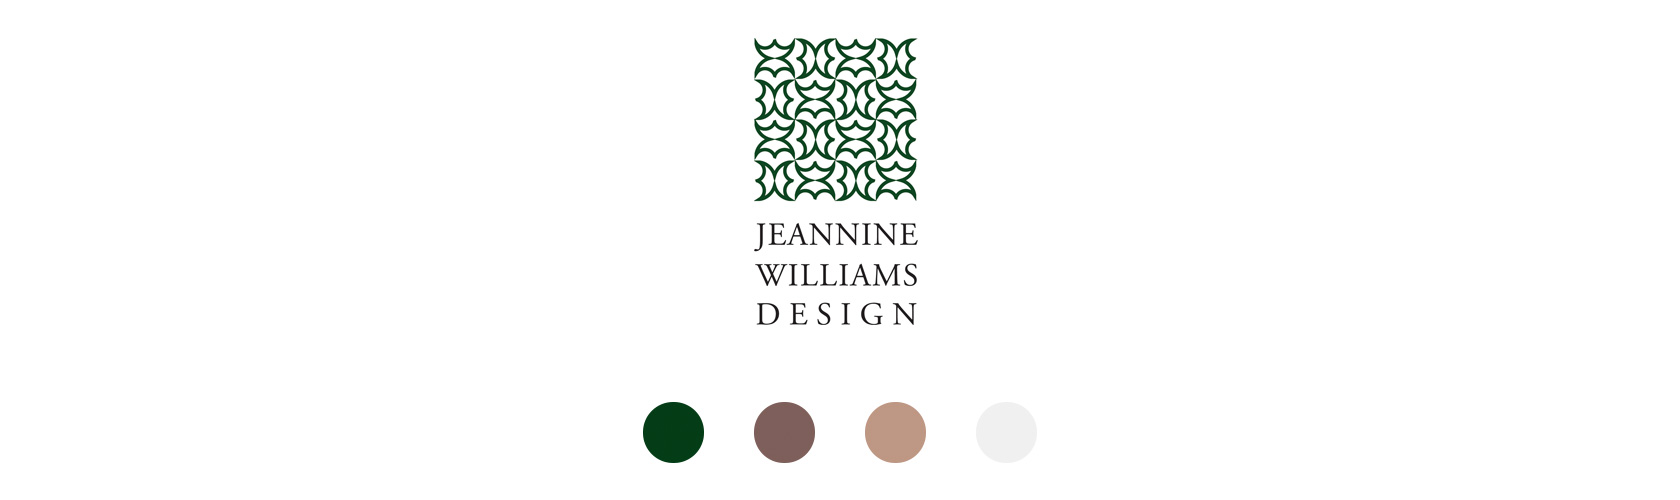 Jeannine WIlliams Design, New York